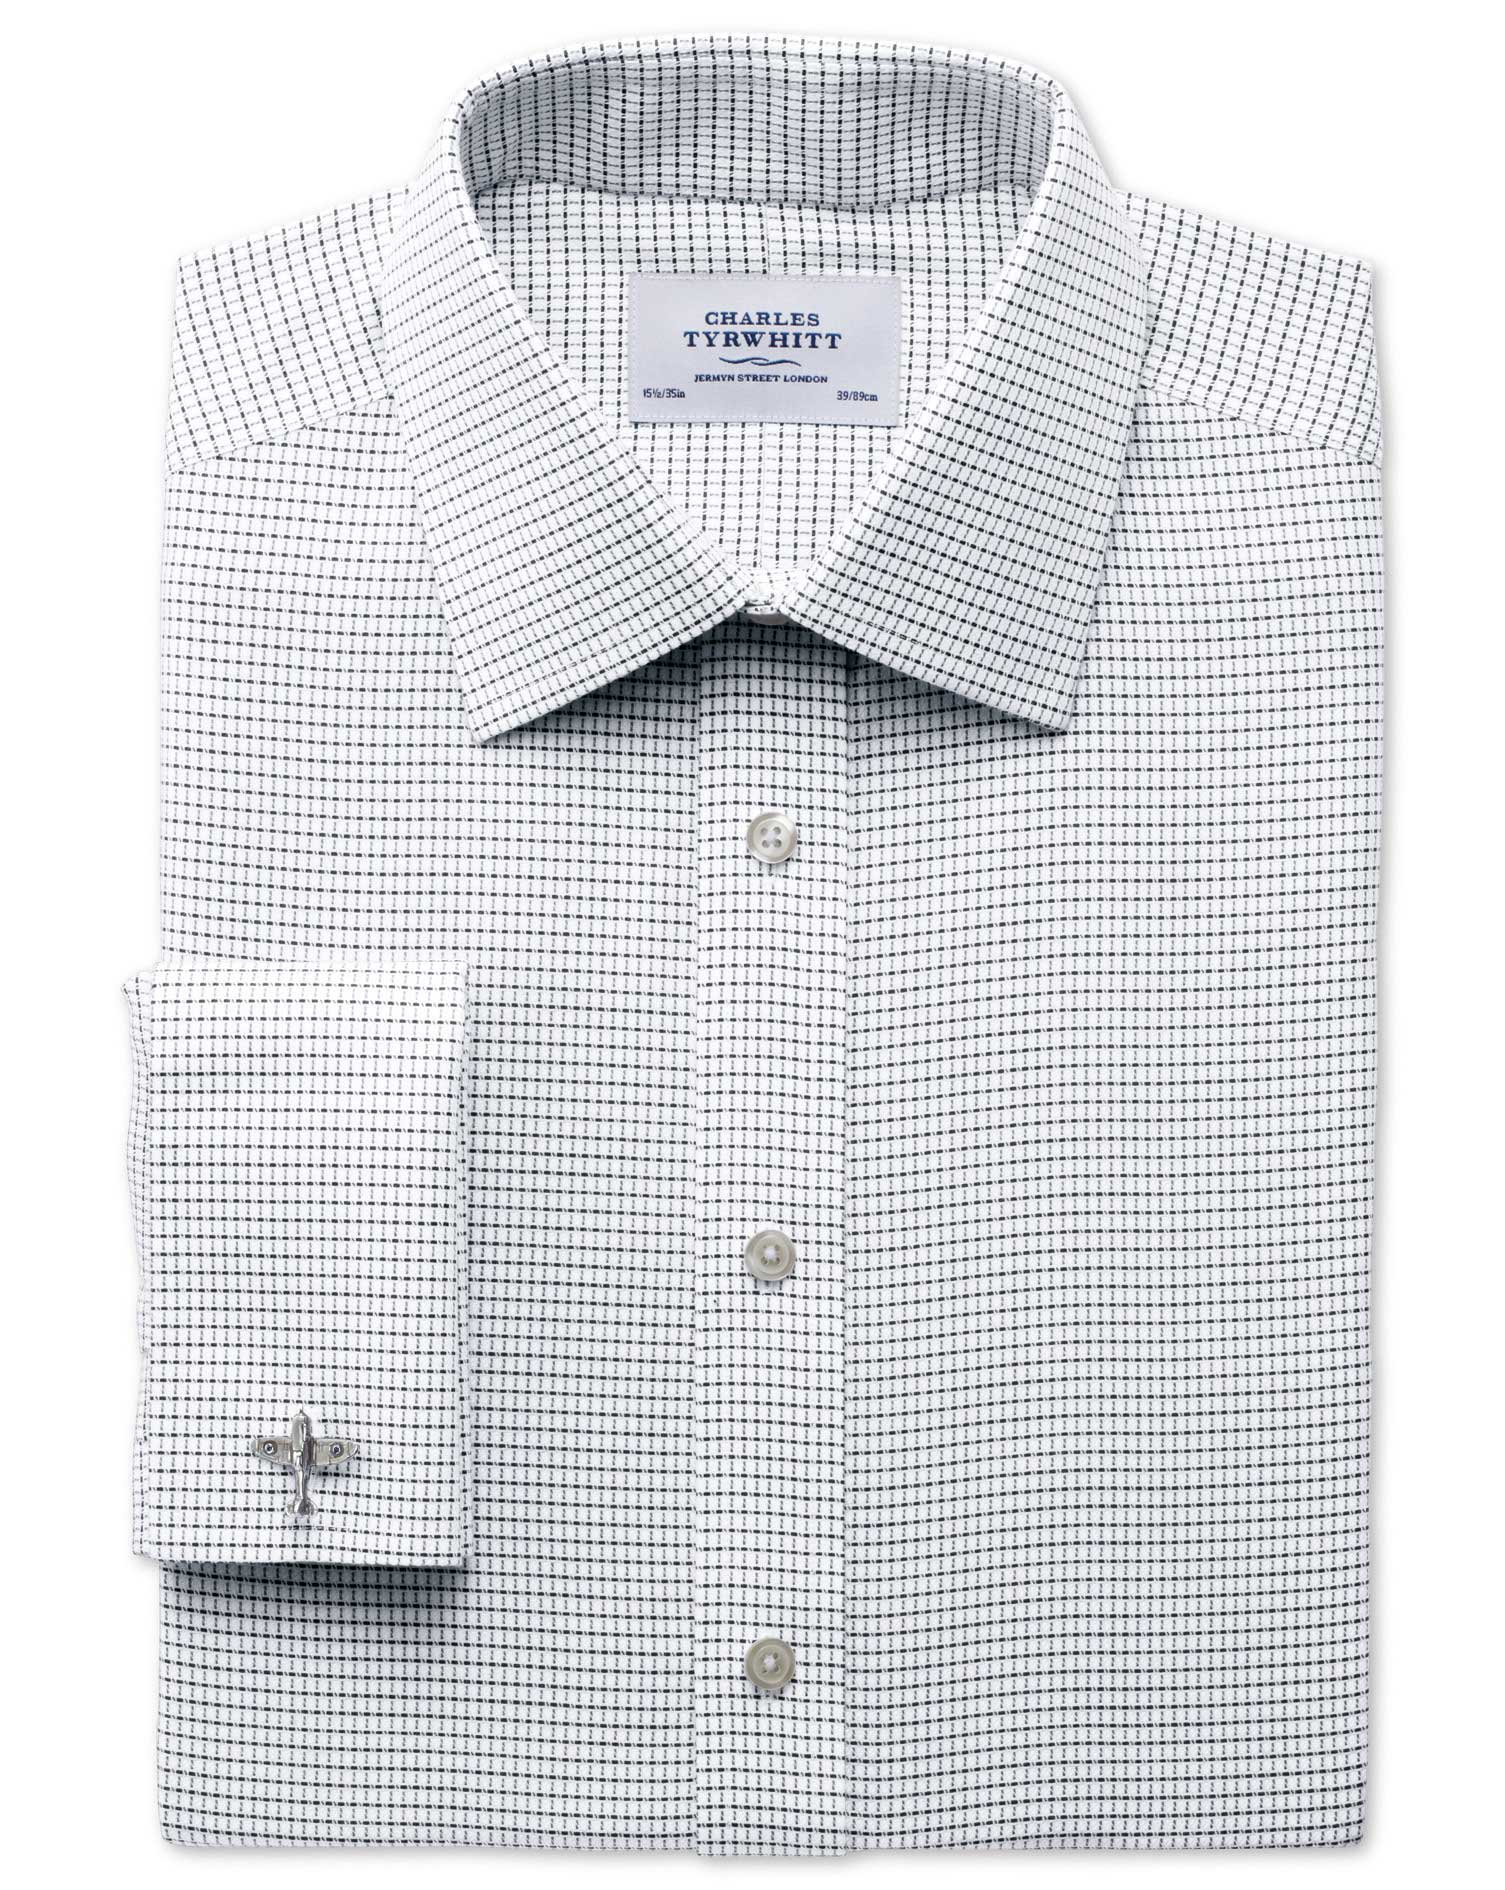 Classic Fit Non-Iron White and Black Cotton Formal Shirt Double Cuff Size 15/35 by Charles Tyrwhitt